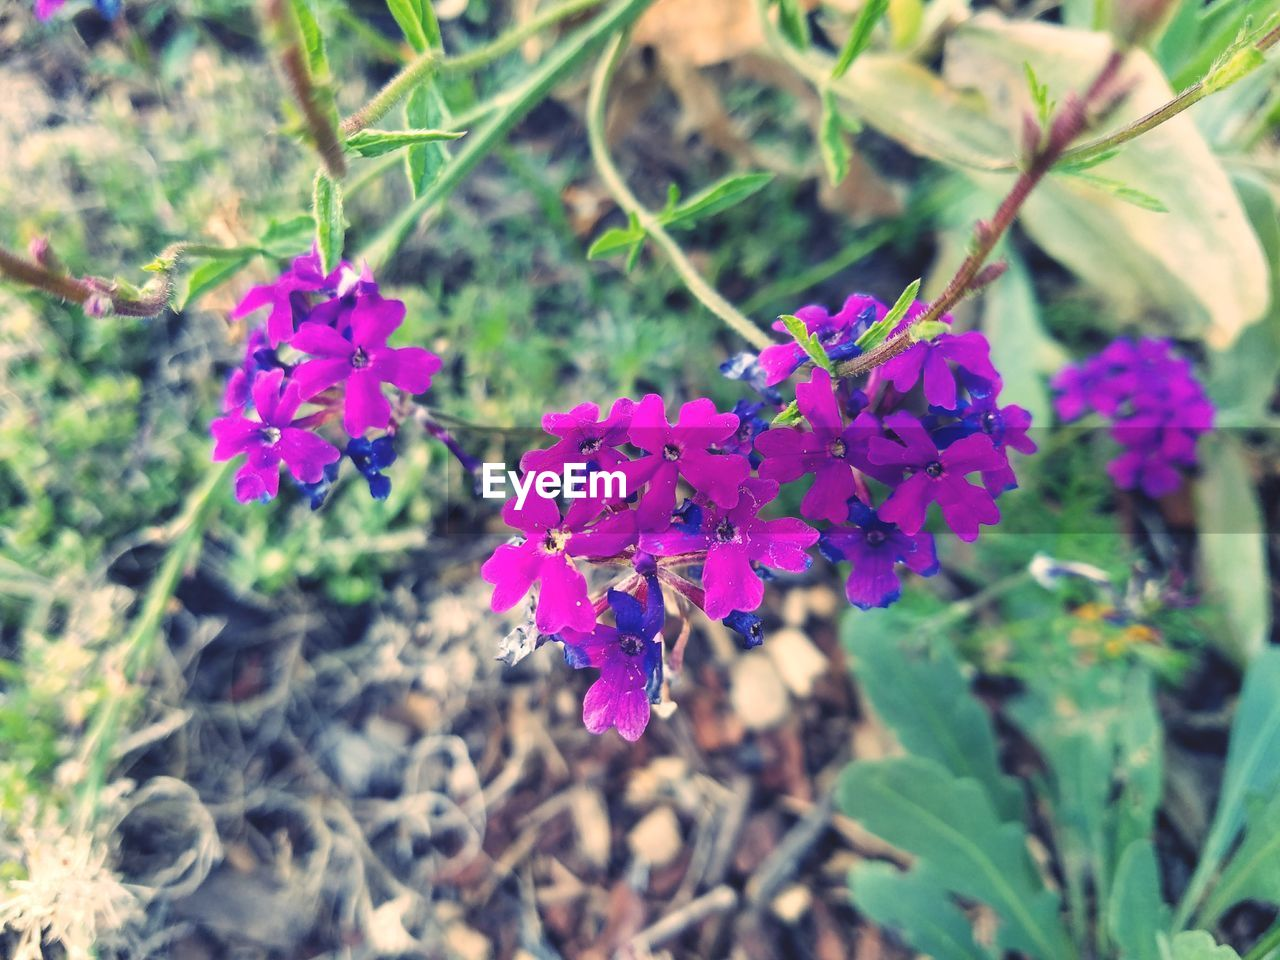 flower, flowering plant, plant, beauty in nature, freshness, growth, fragility, vulnerability, close-up, petal, focus on foreground, day, nature, no people, pink color, flower head, inflorescence, leaf, selective focus, plant part, purple, outdoors